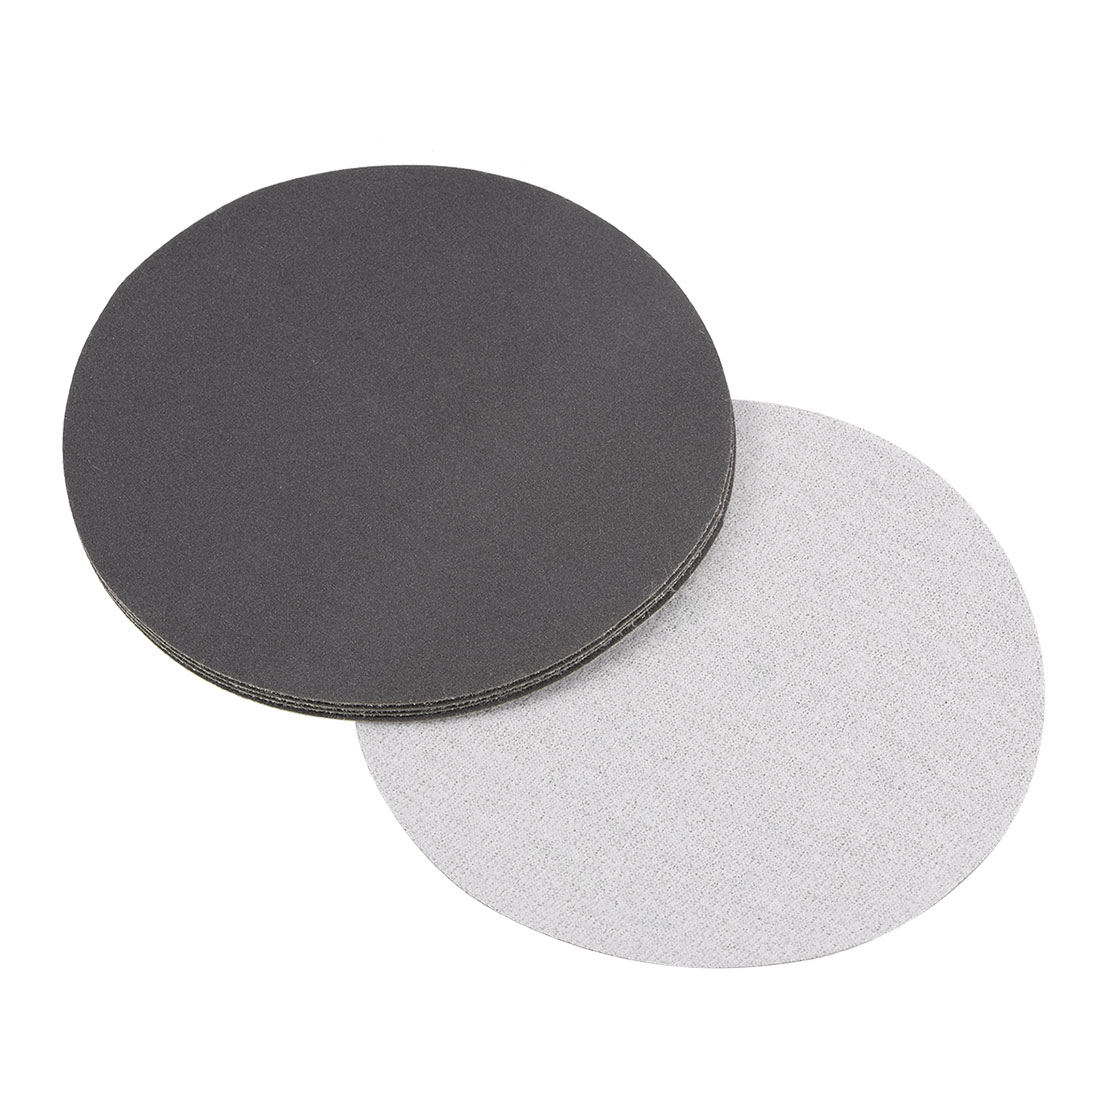 5 inch Wet Dry Discs 400 Grit Hook and Loop Sanding Disc Silicon Carbide 5pcs